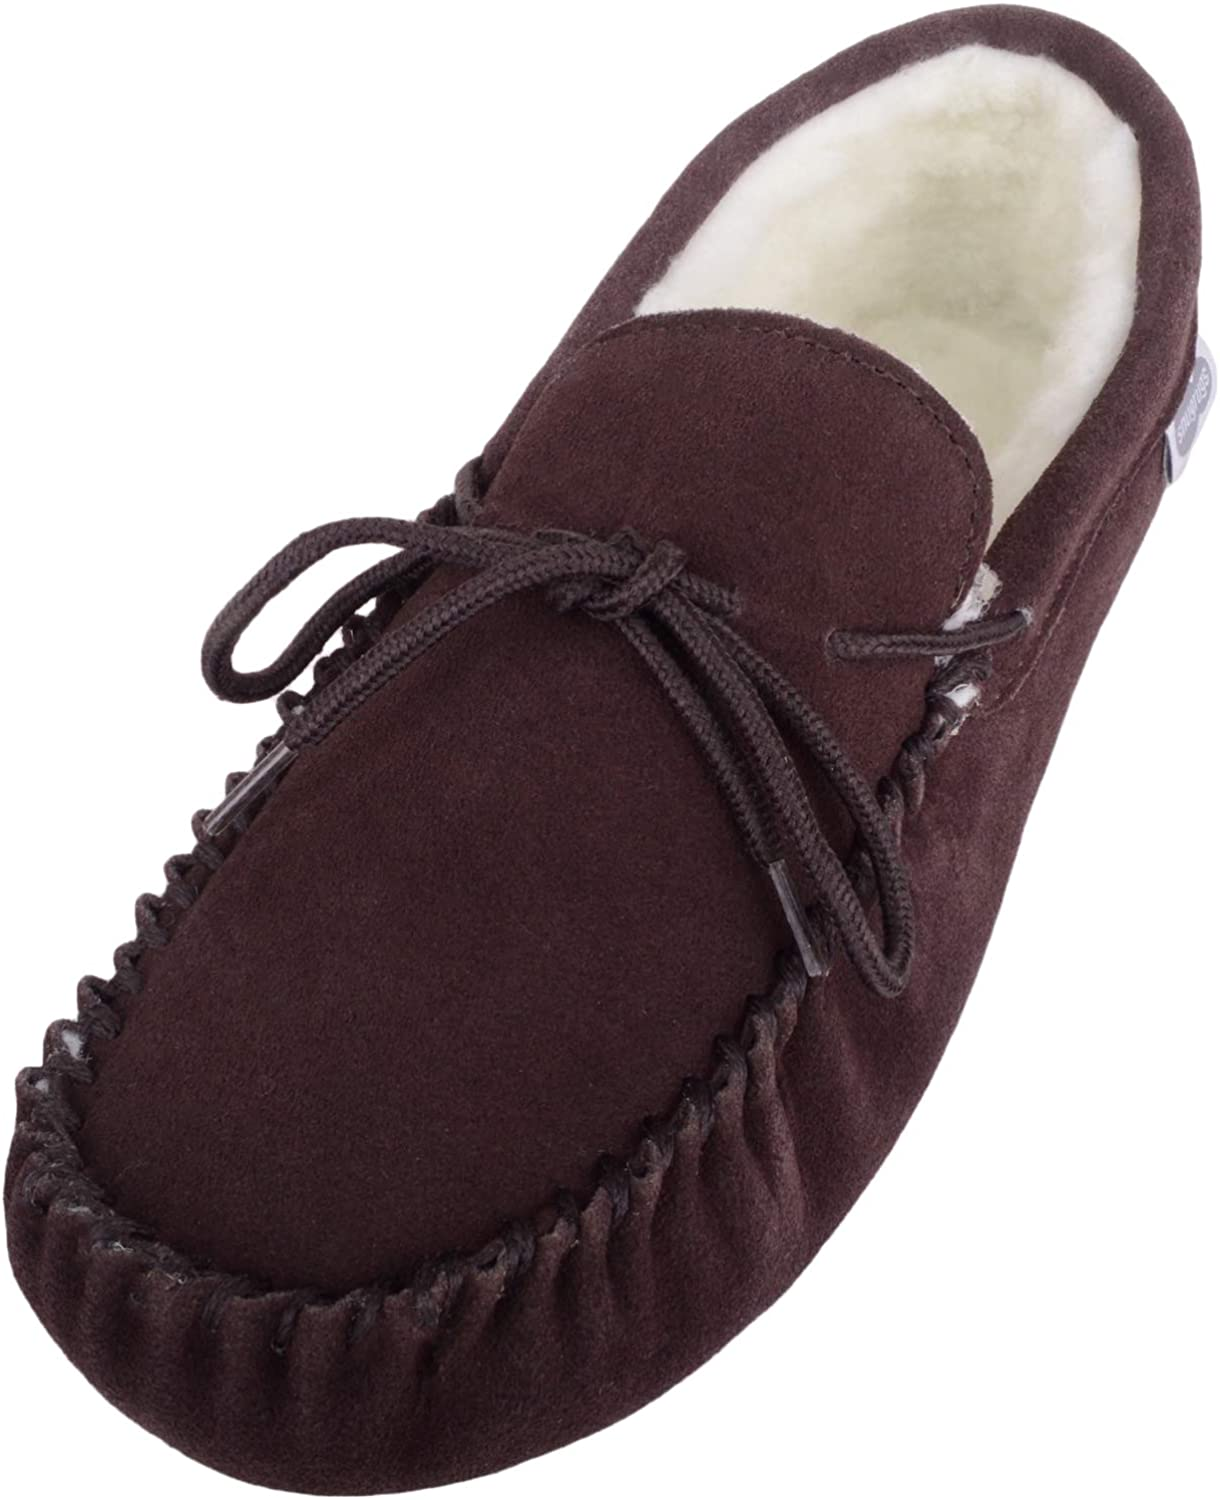 Brown Unisex Soft Sole Tan Lambswool Moccasins Mens /& Ladies Slippers